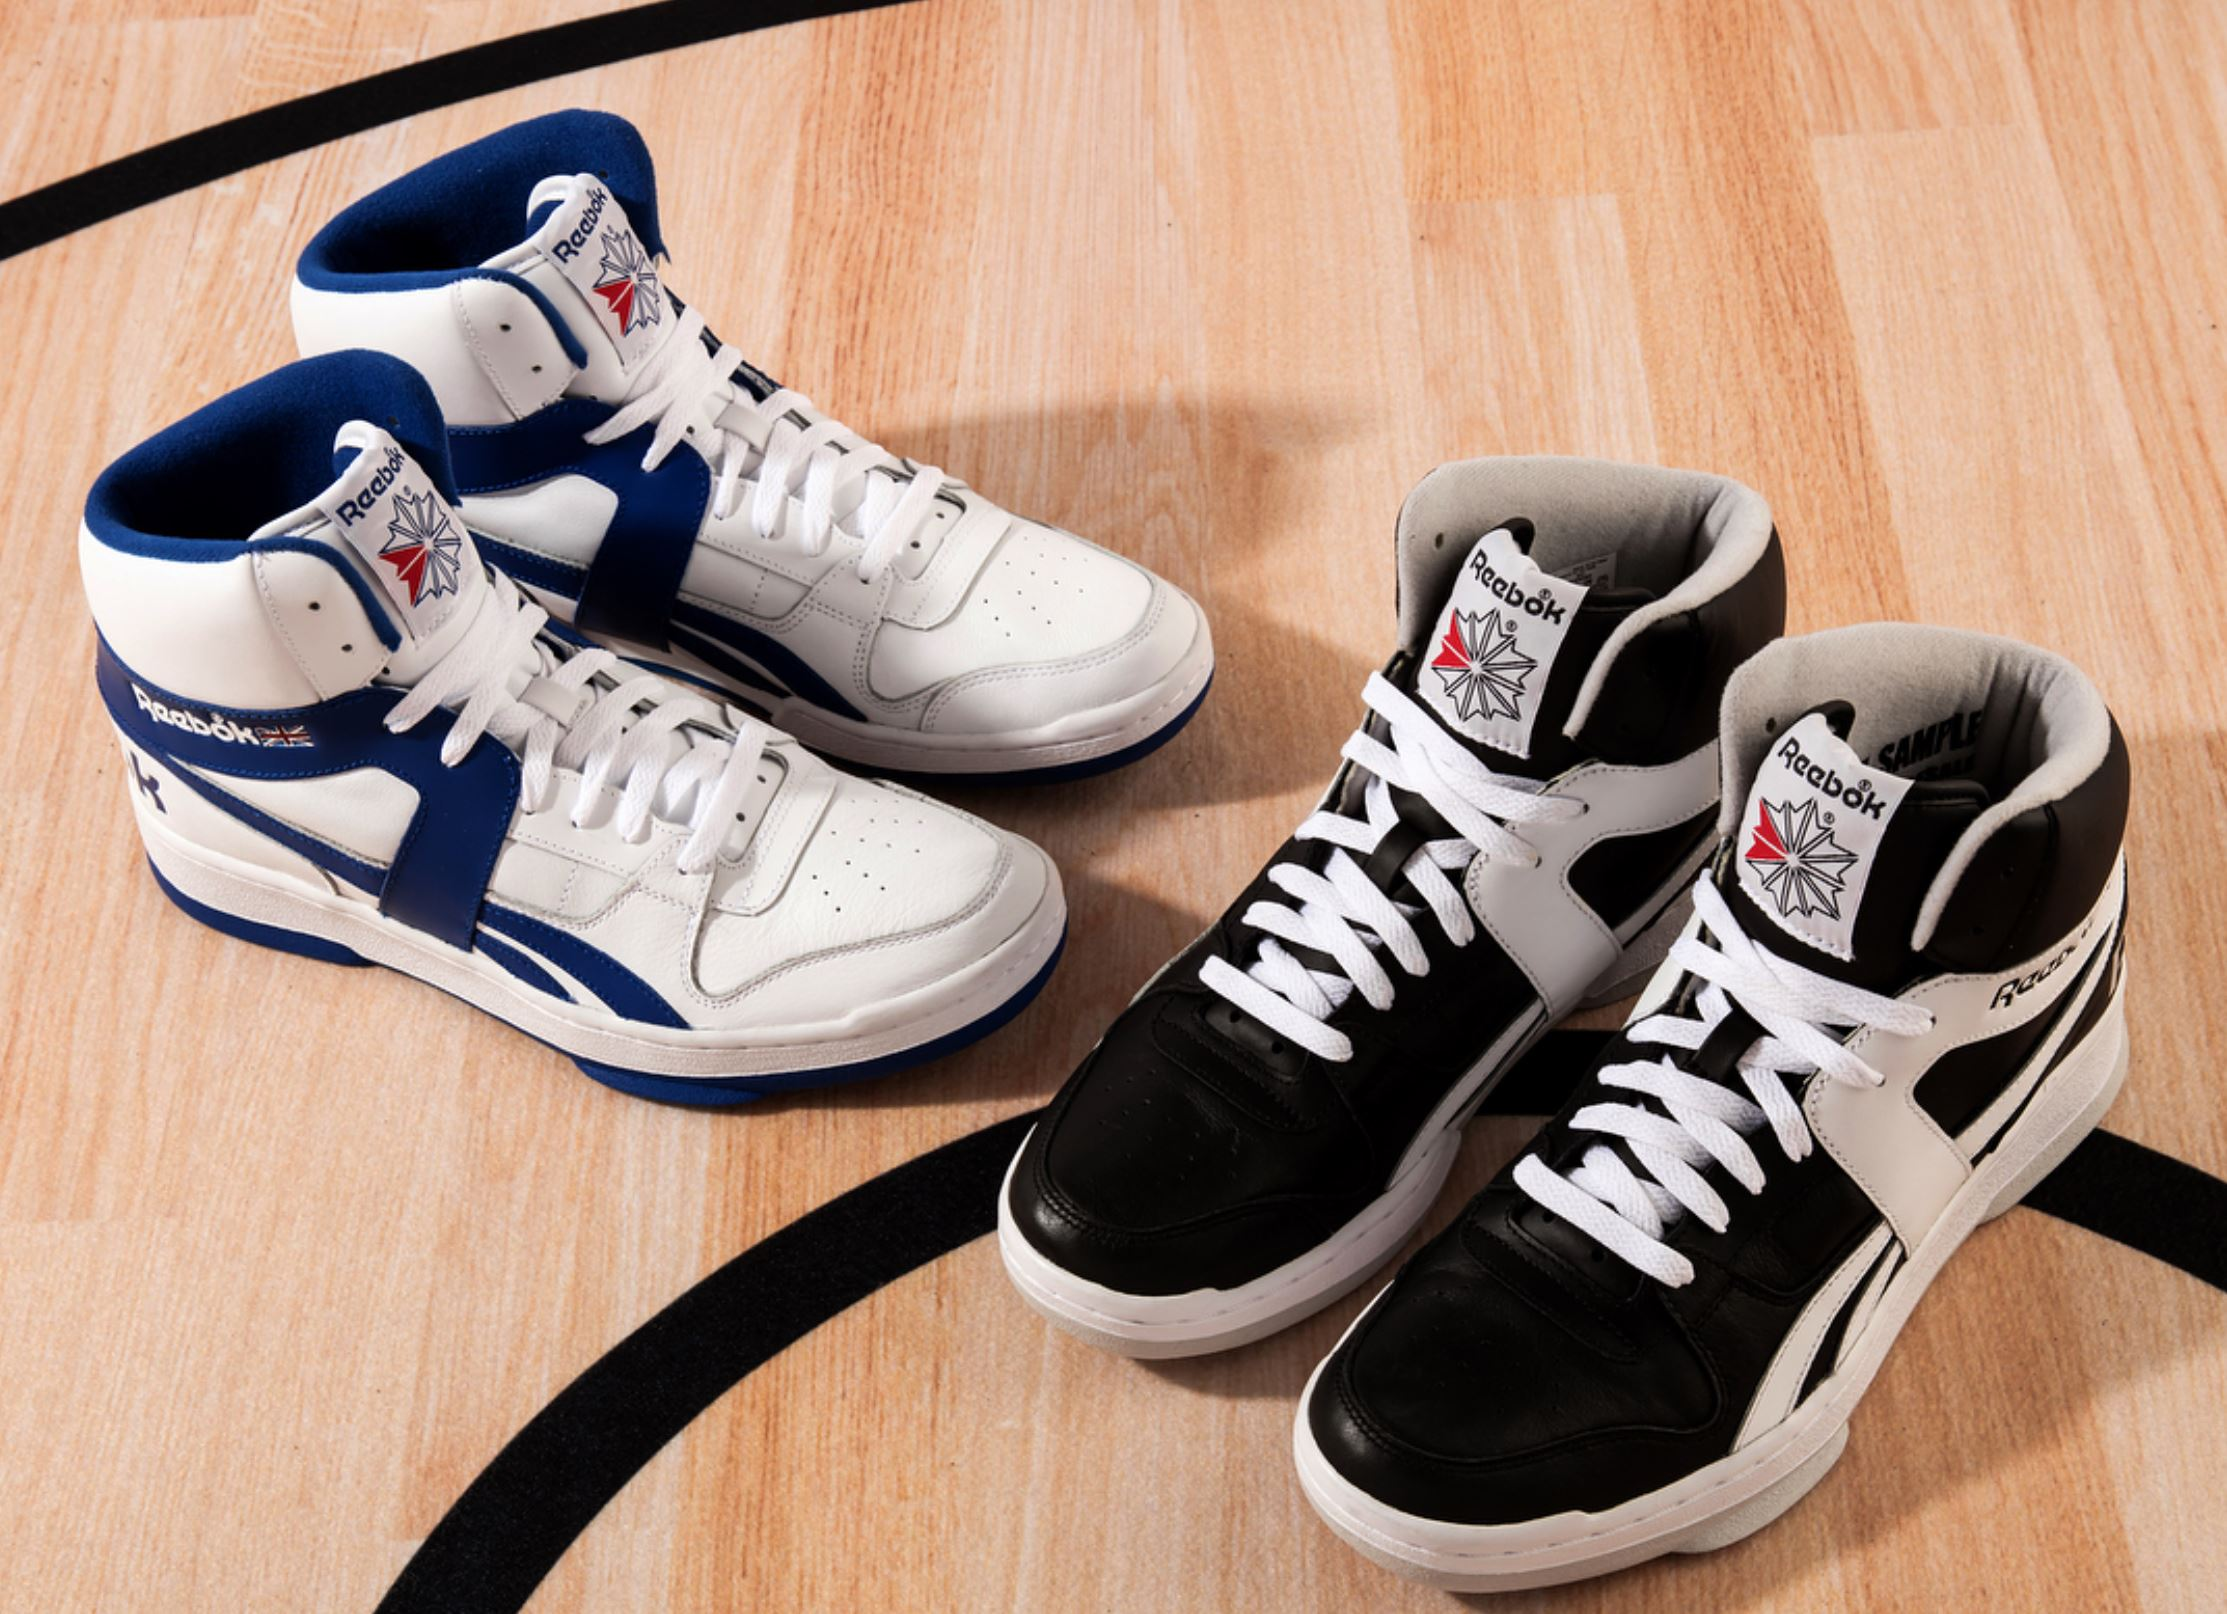 The Reebok BB 5600 is Finally Back at